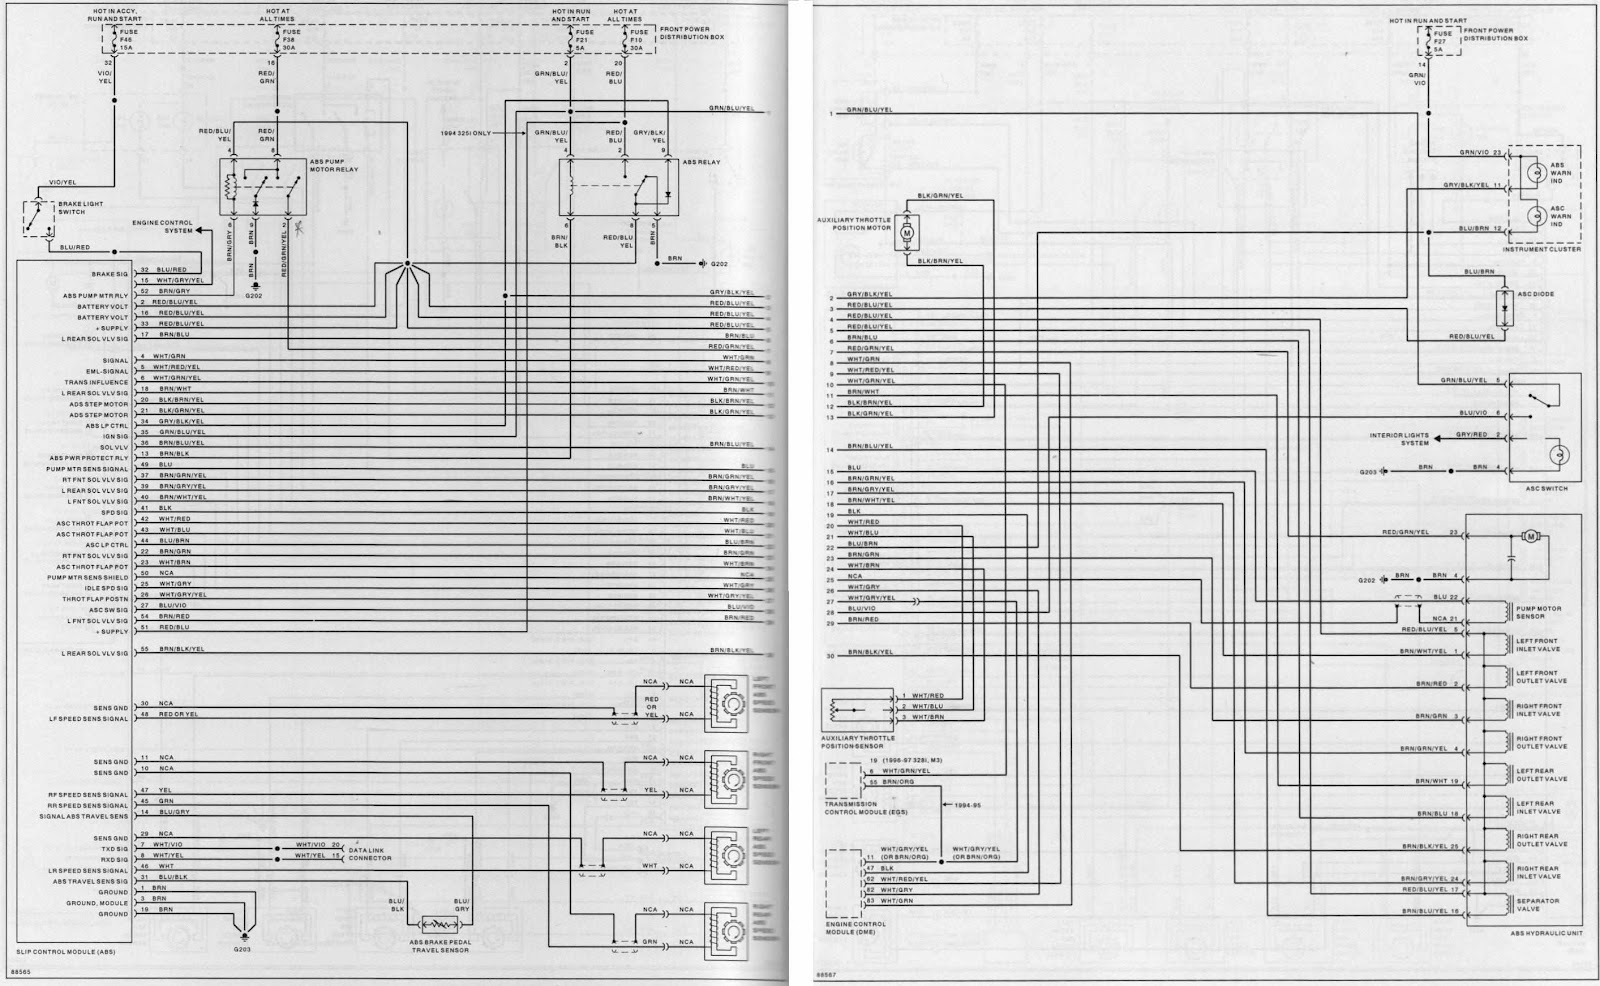 bmw m3 wiring diagram bmw wiring diagrams bmw m3 1995 1997 abs wiring diagram